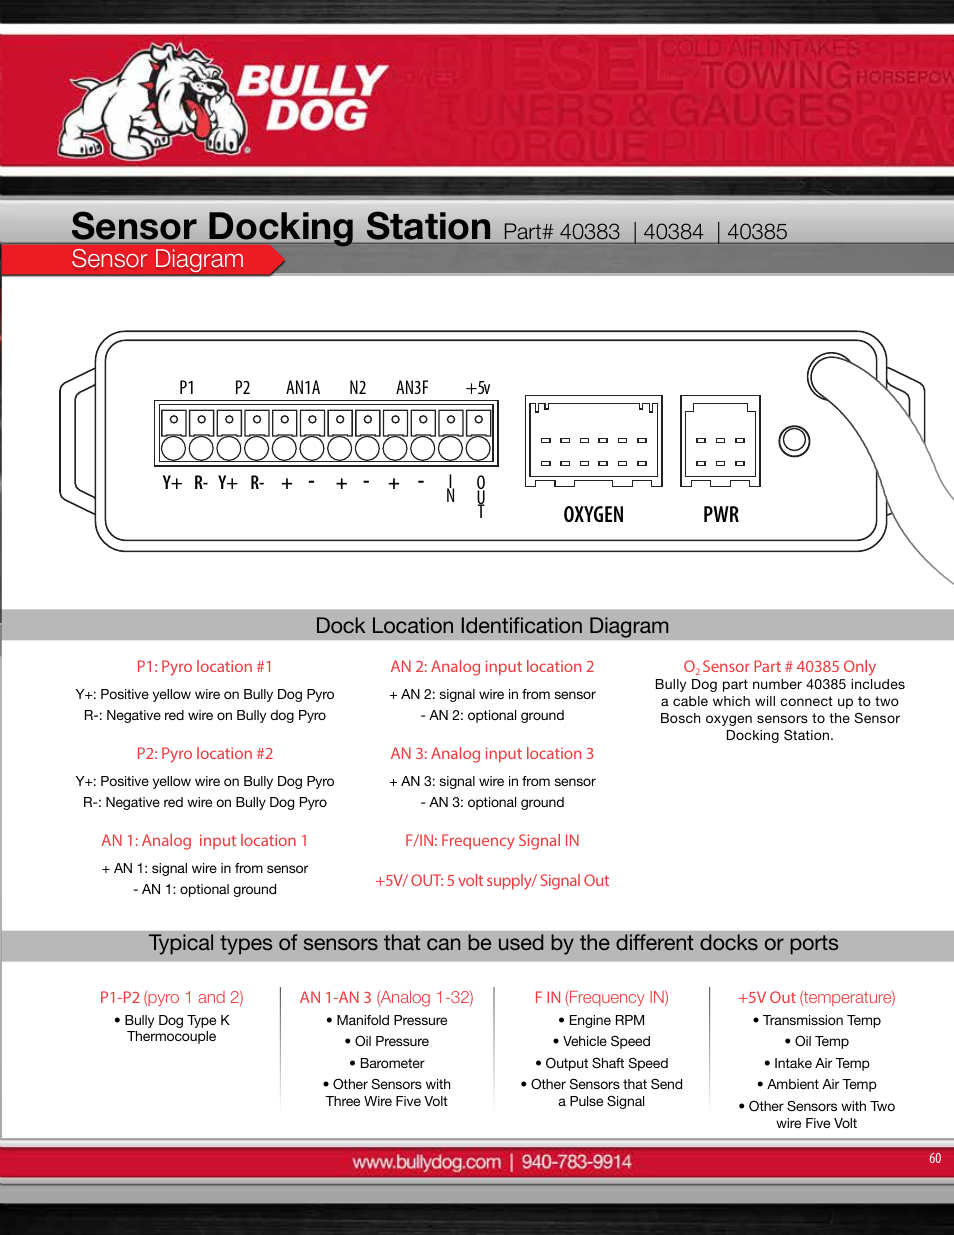 Sensor Docking Station  Sensor Diagram  Pwr Oxygen